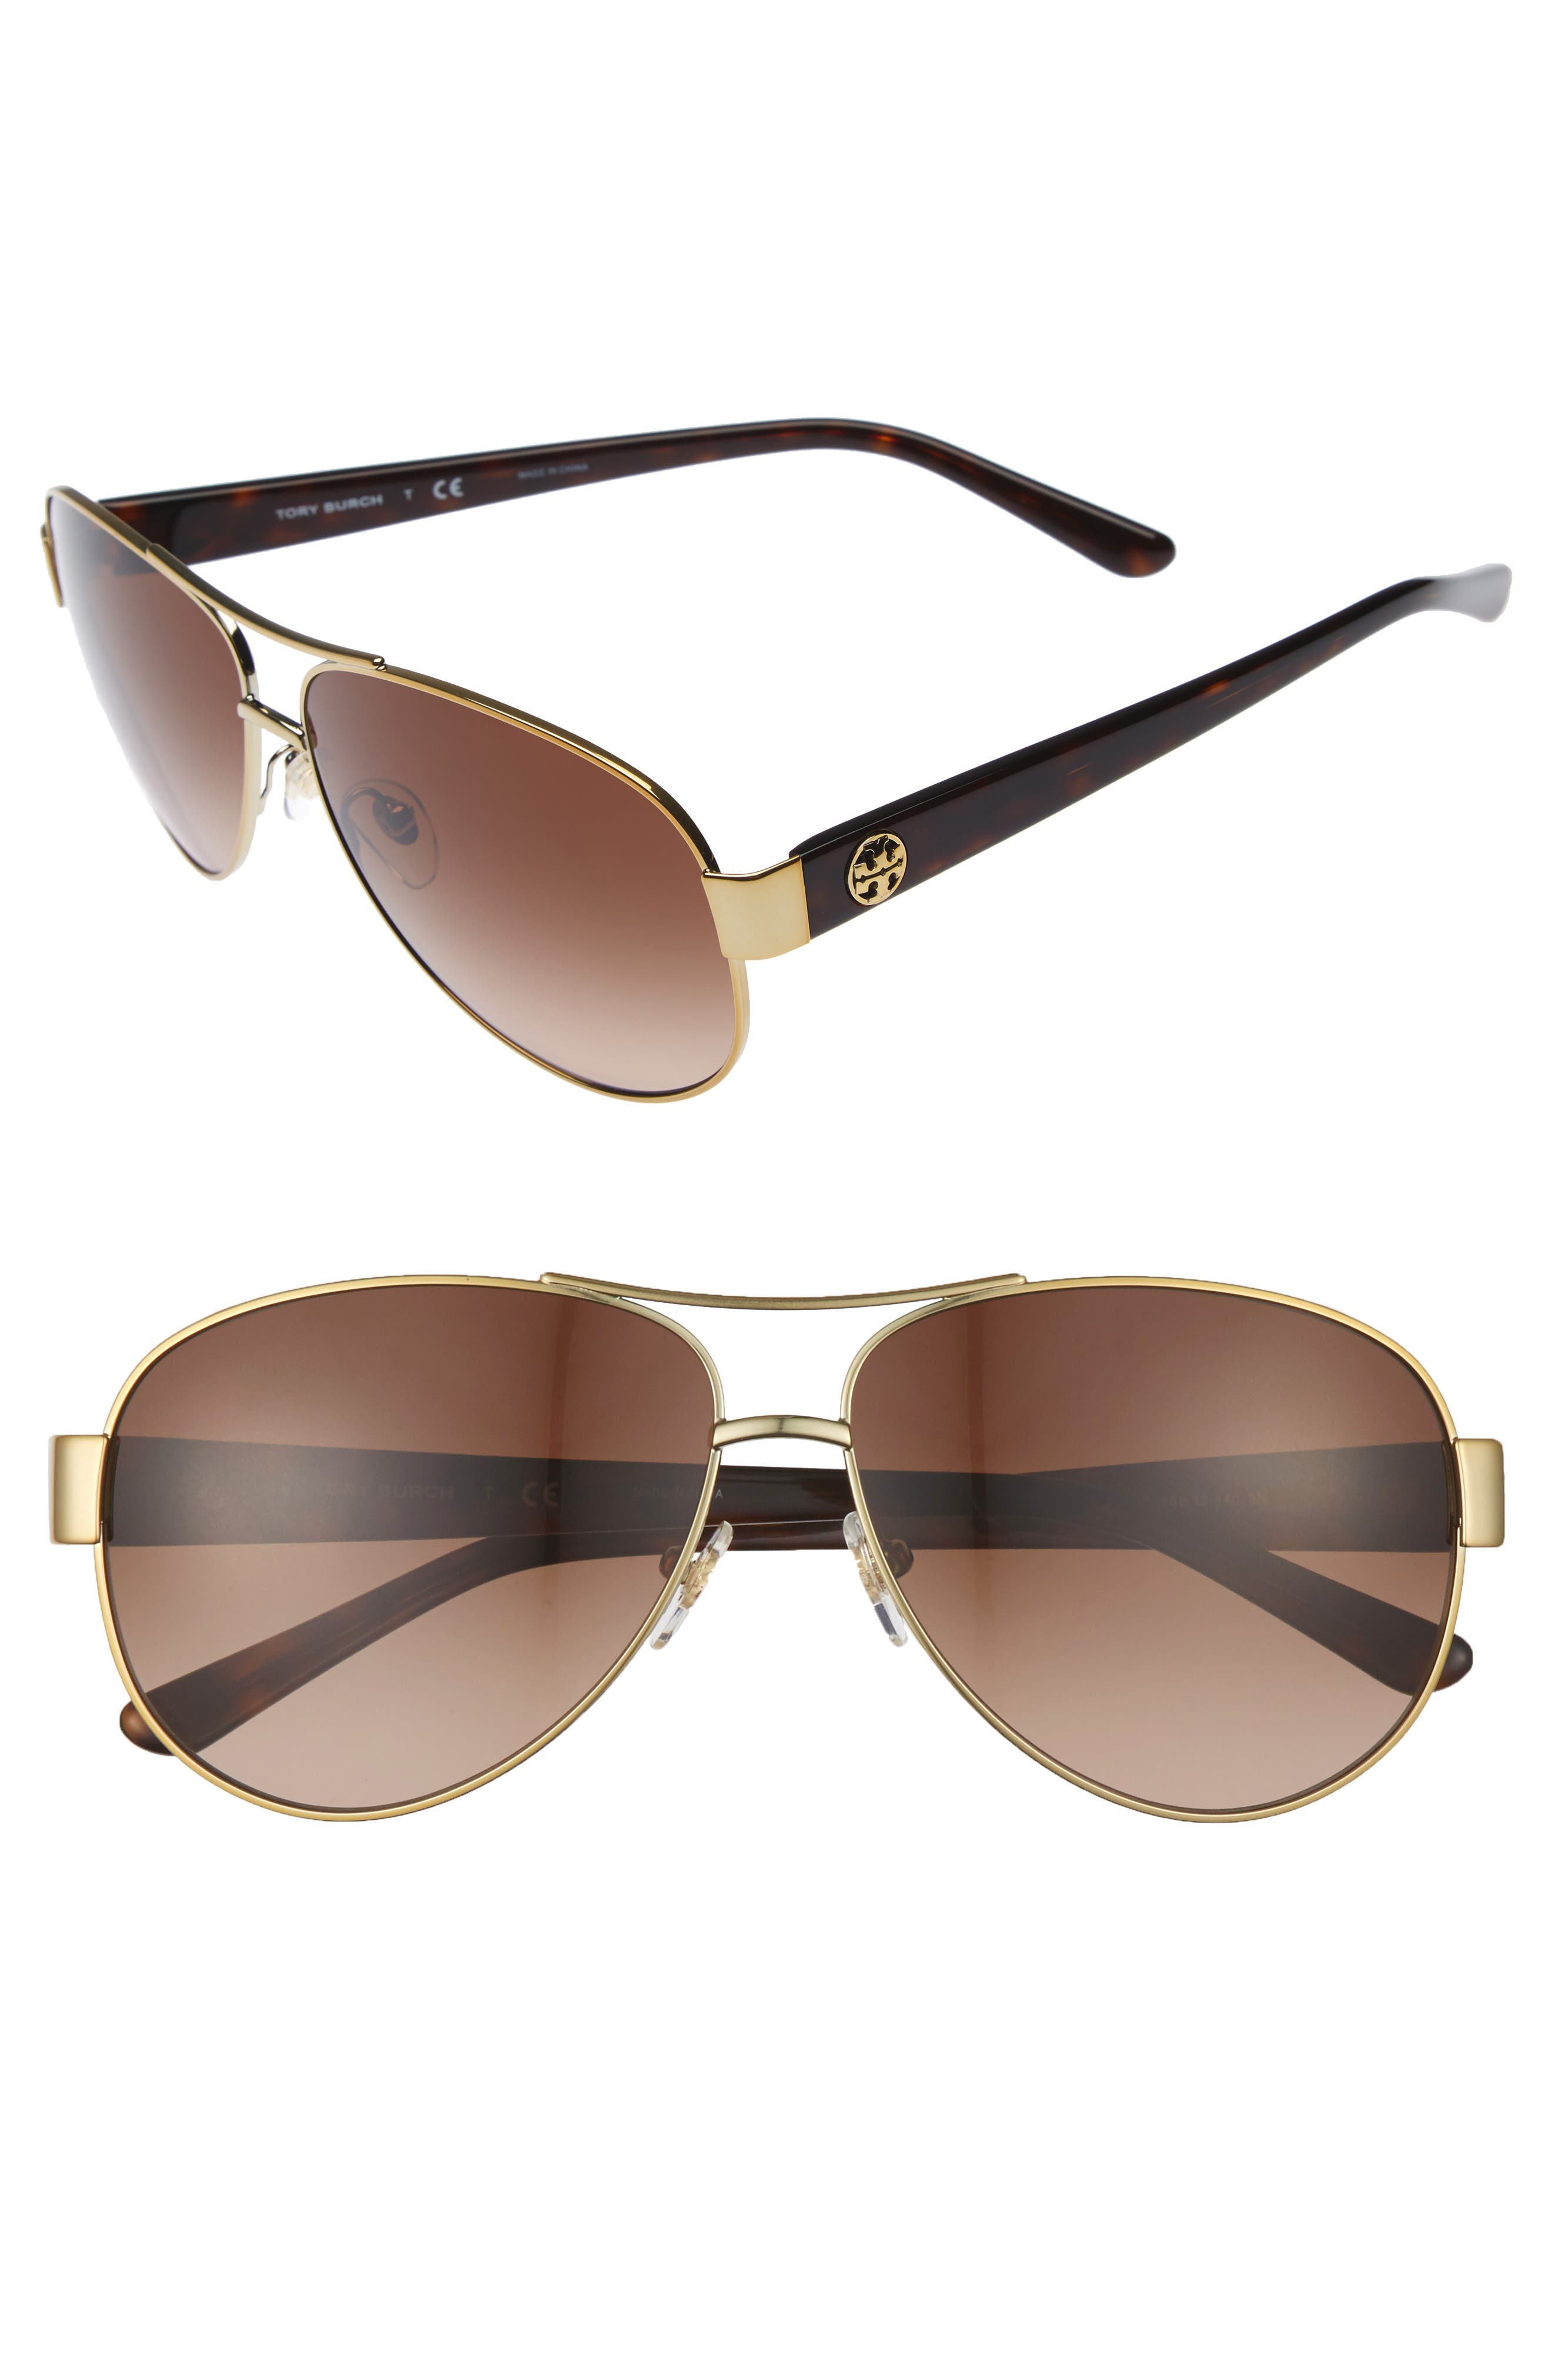 60mm Aviator Sunglasses,                         Main,                         color, GOLD/ BROWN